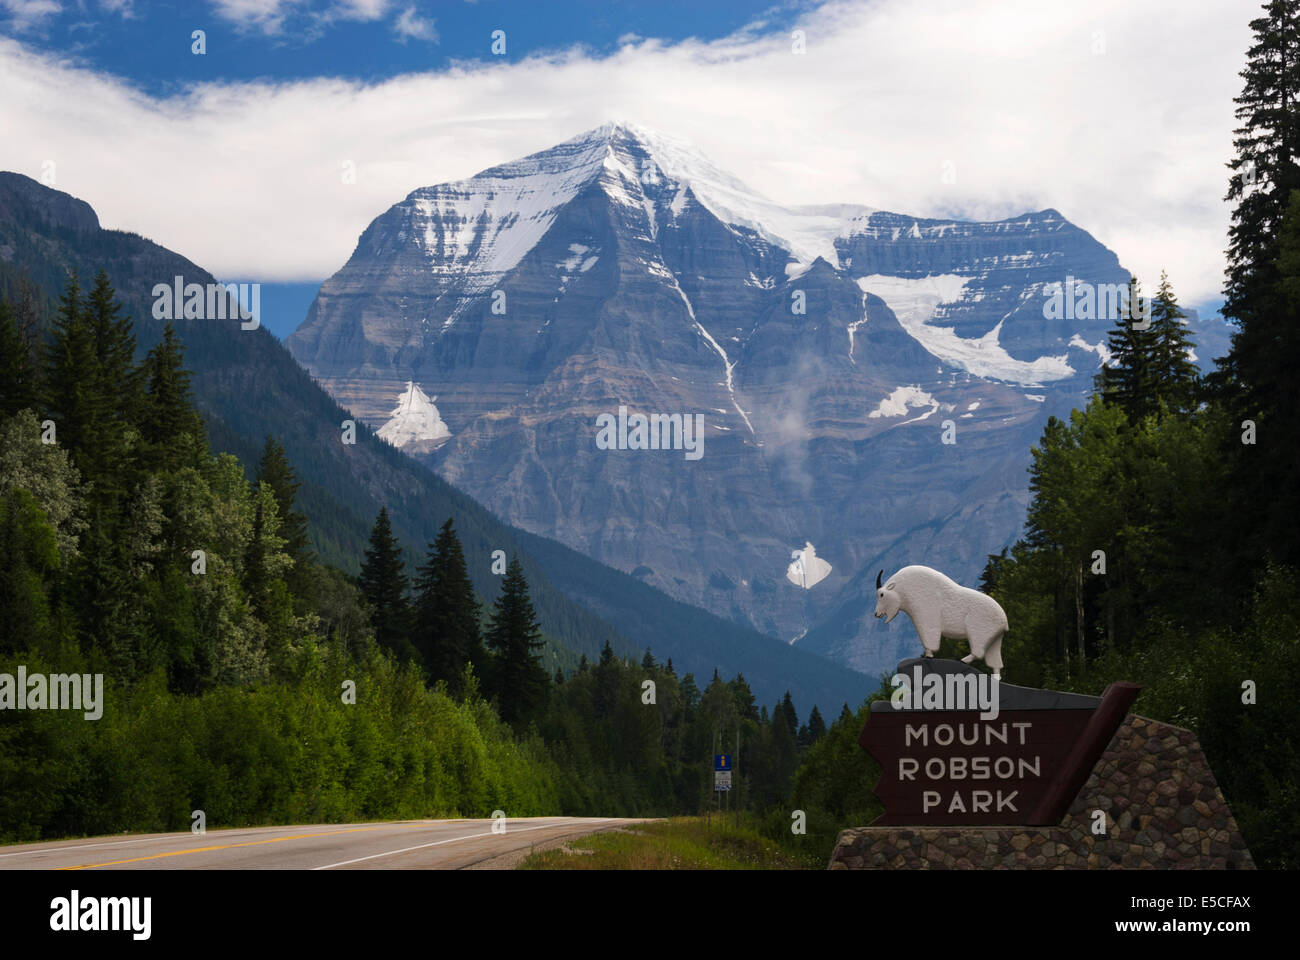 Elk203-2473 Canada, British Columbia, Mount Robson Provincial Park, entry sign - Stock Image